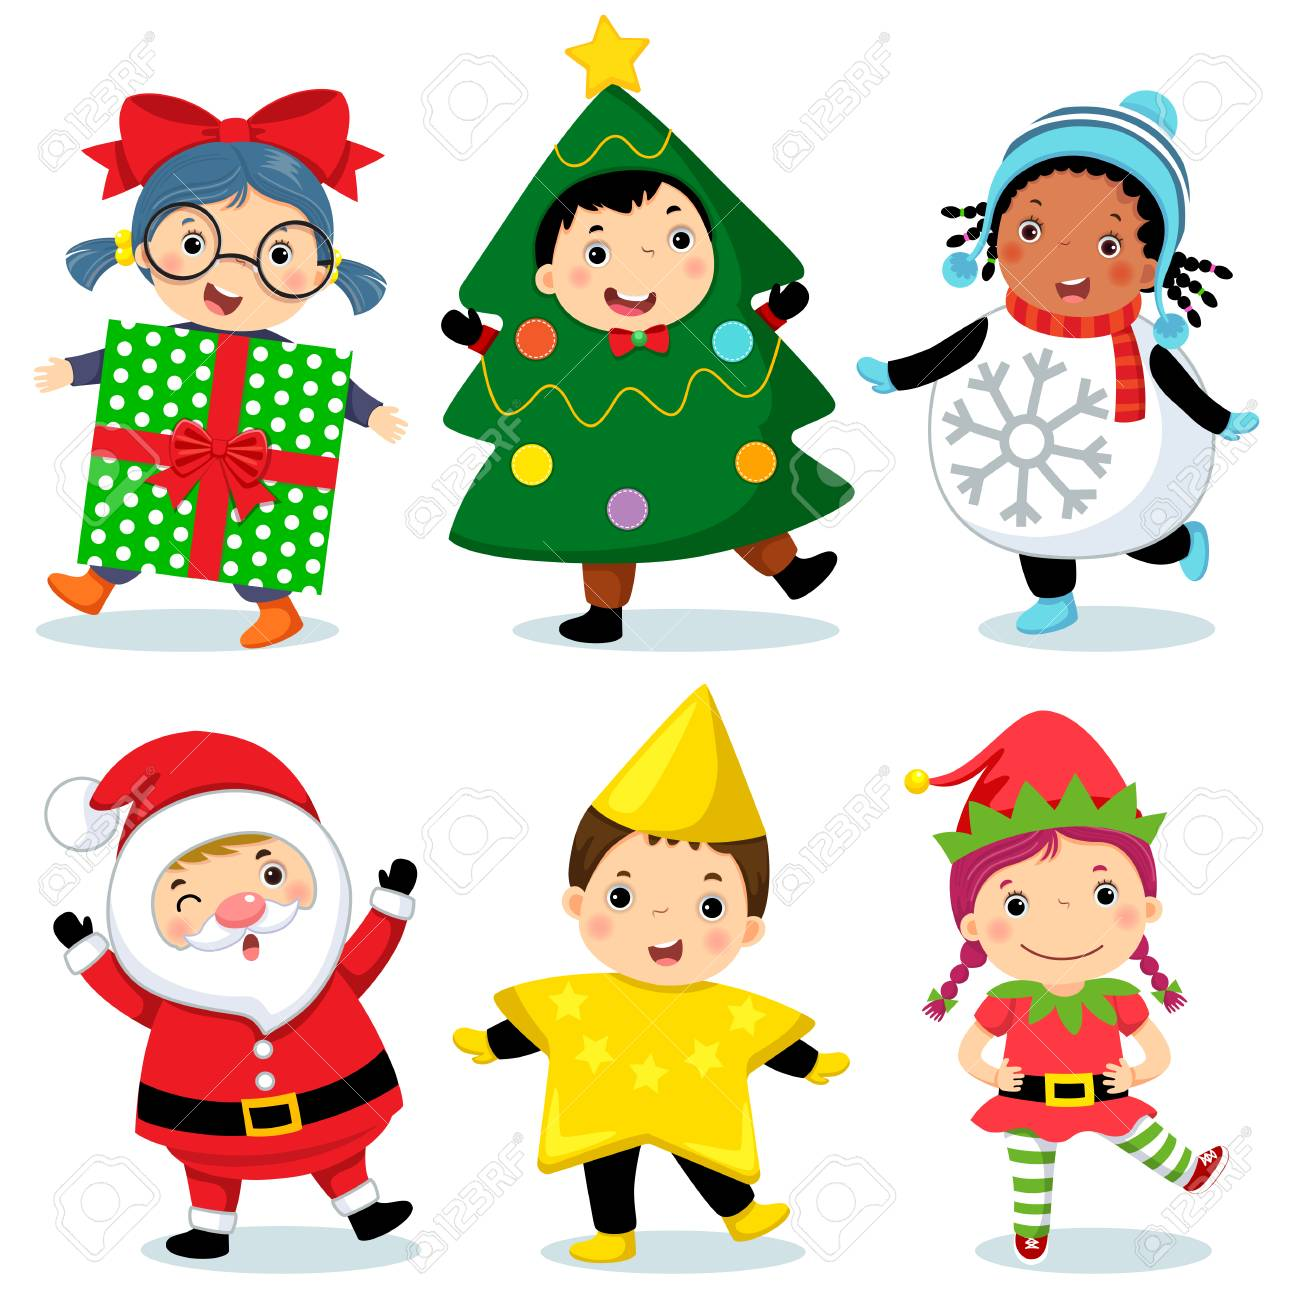 Vector illustration of cute kids wearing Christmas costumes - 89095917